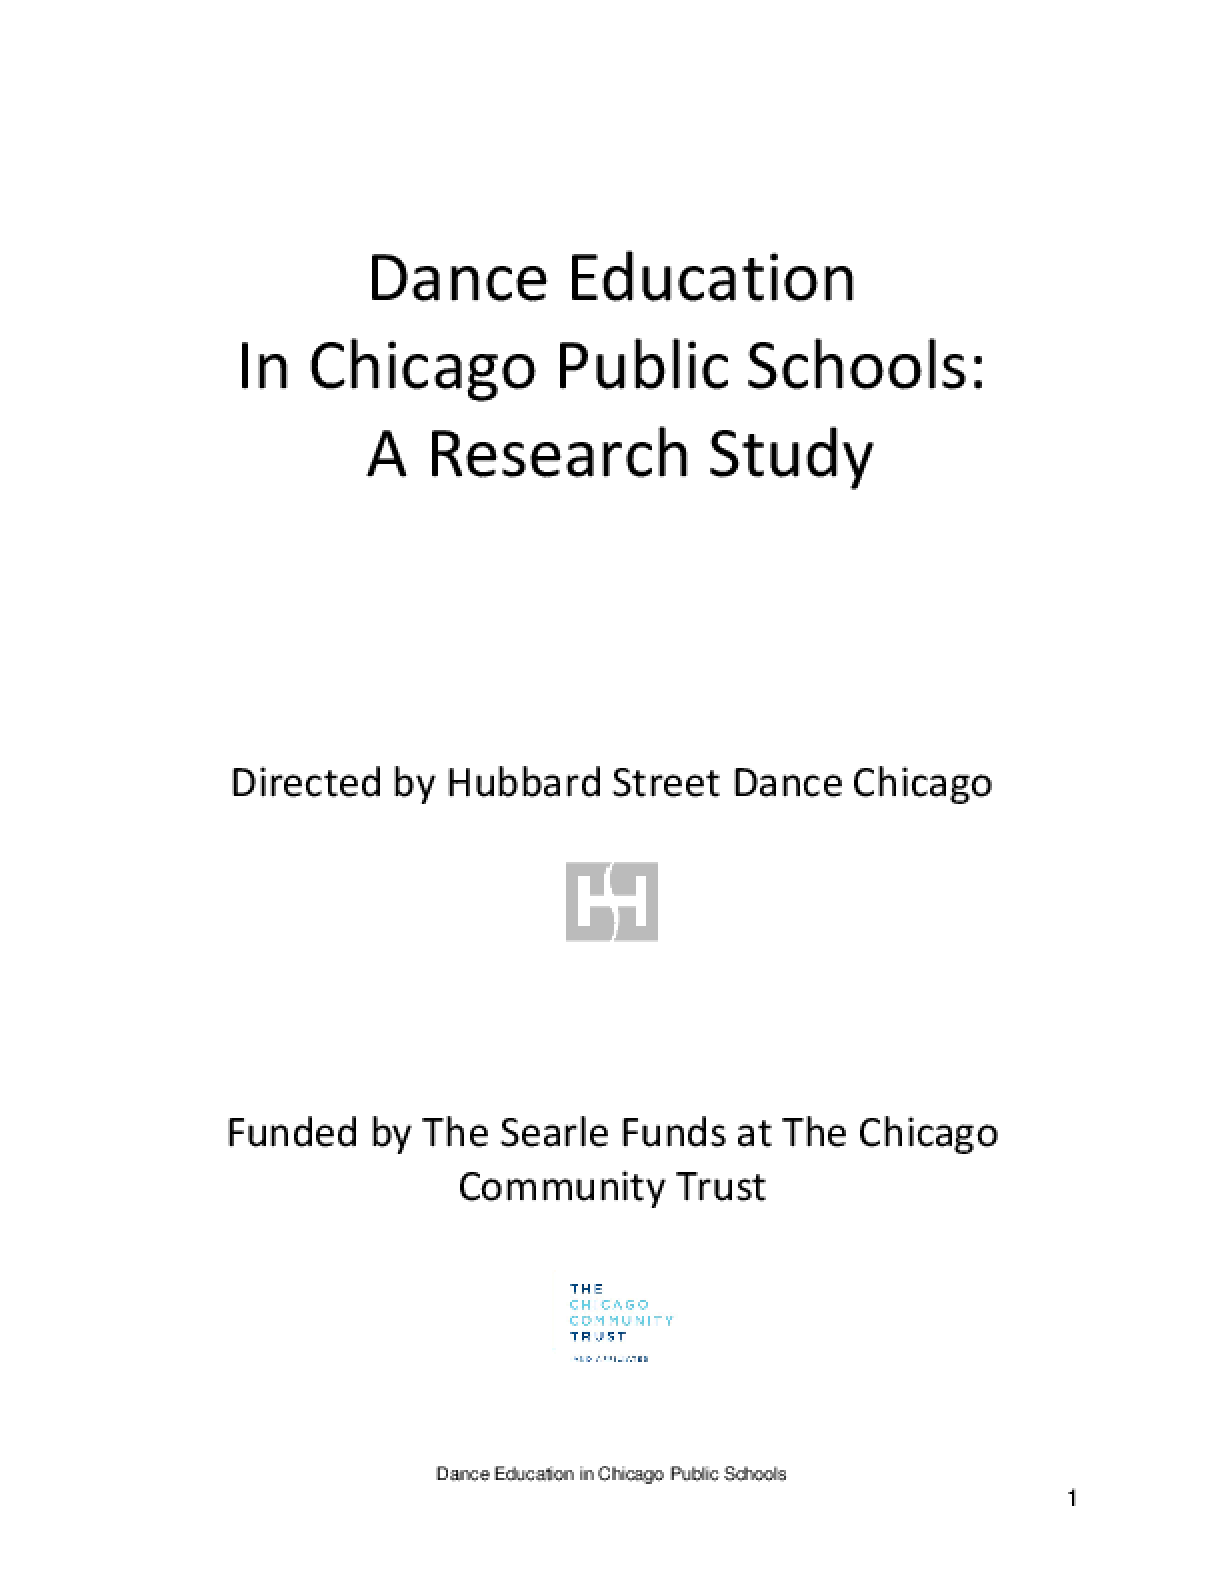 Dance Education in Chicago Public Schools: A Research Study